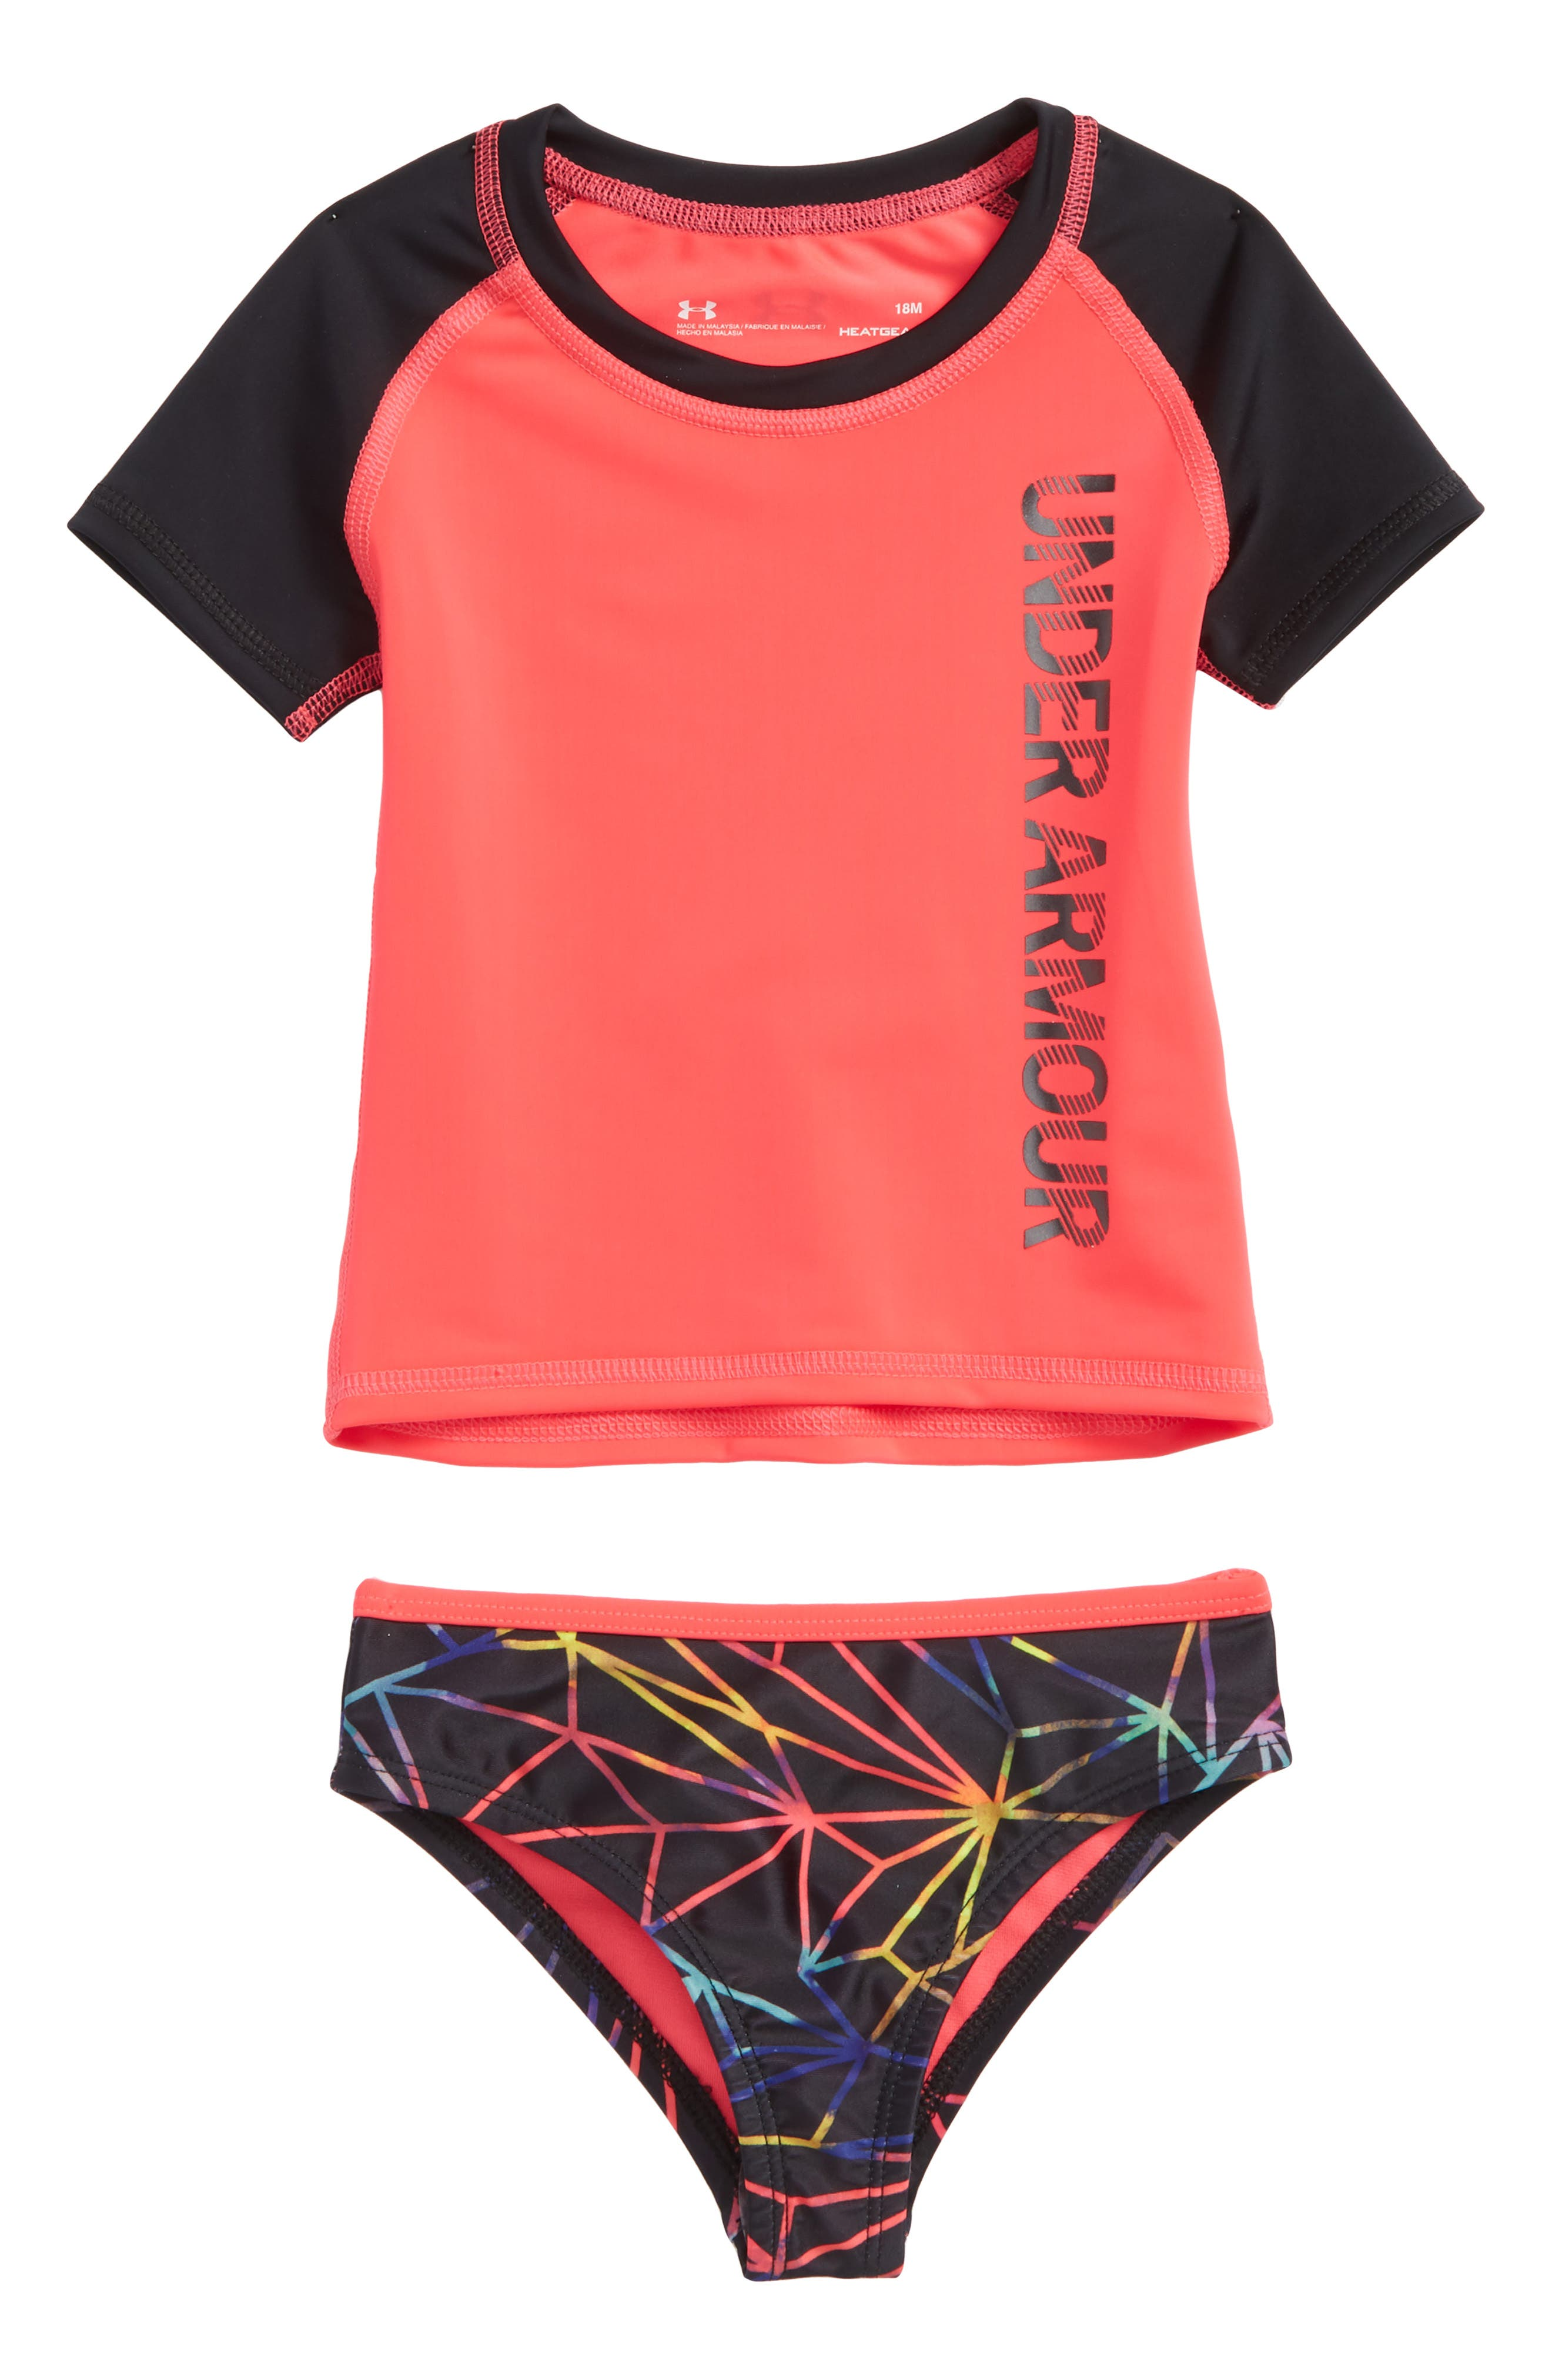 Alternate Image 1 Selected - Under Armour Poly Prism HeatGear® Two-Piece Rashguard Swimsuit (Baby Girls)